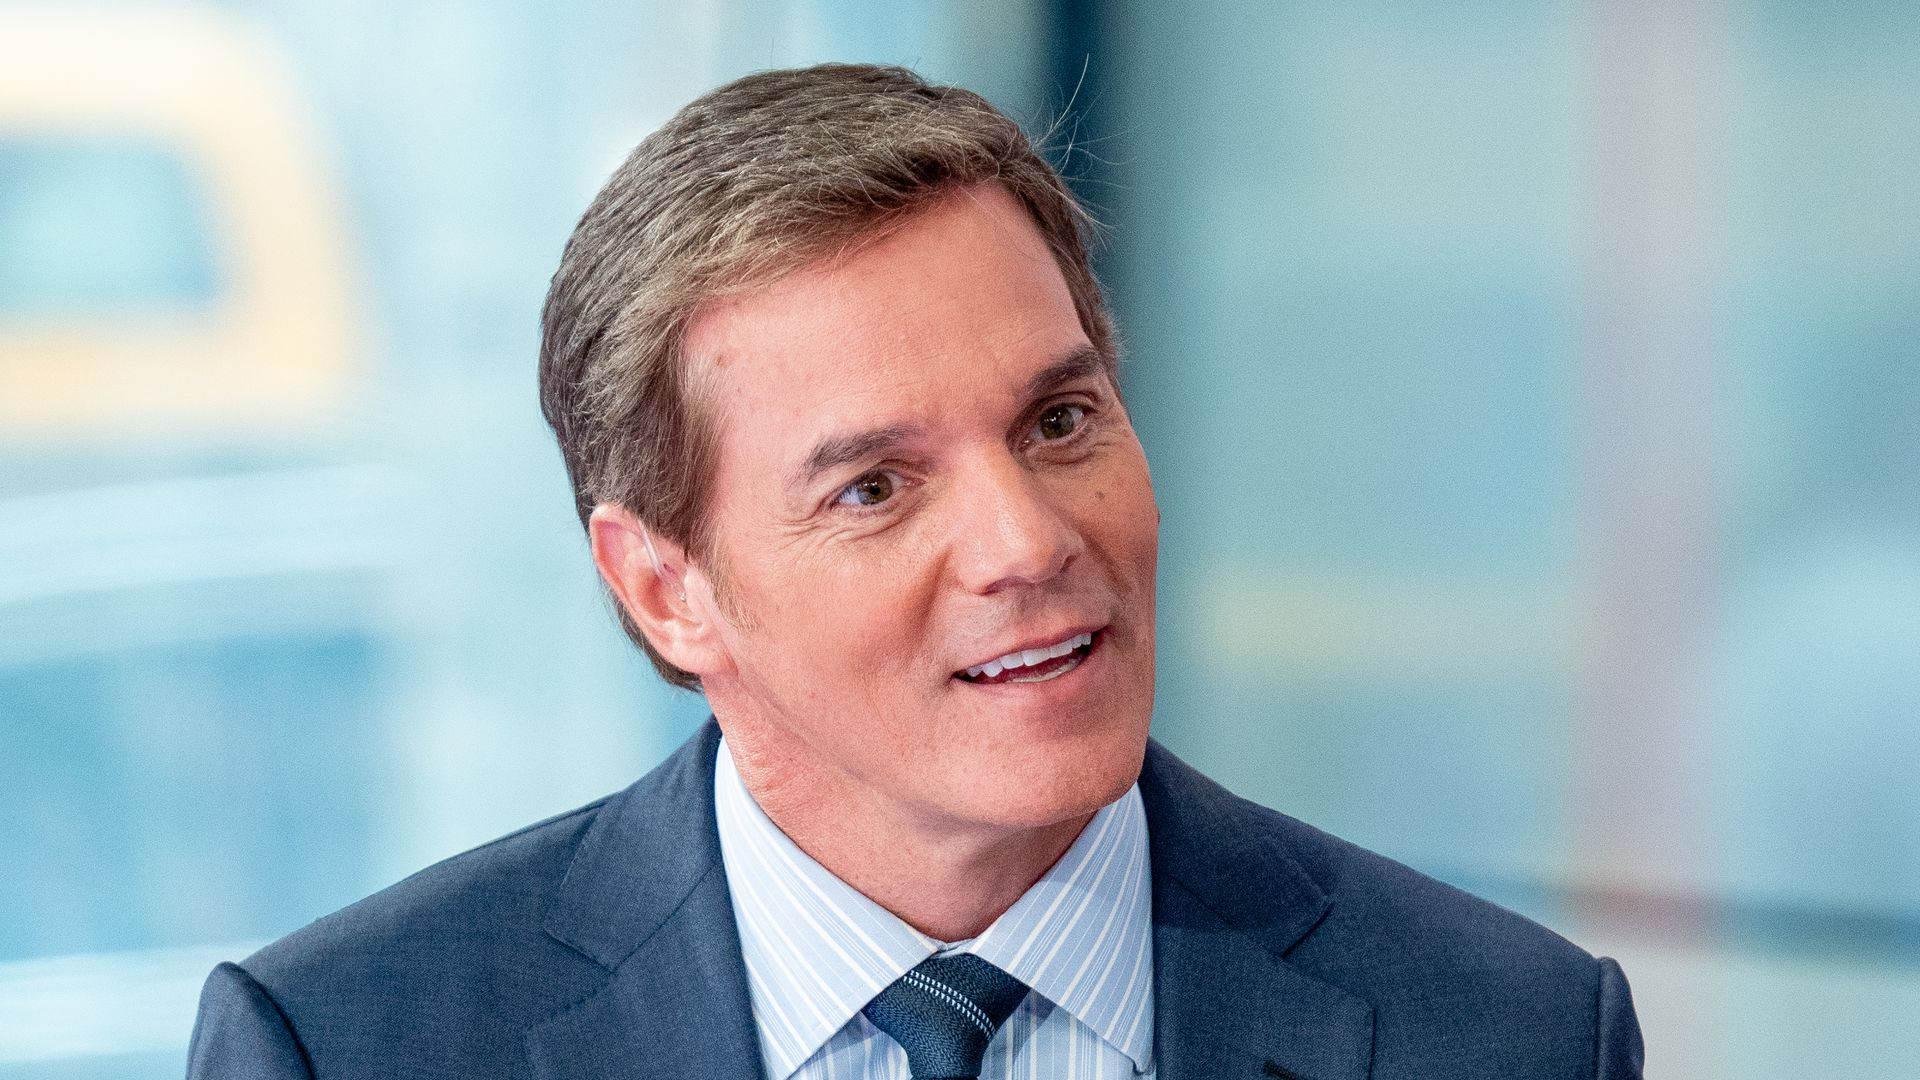 Fox News replacing Shep Smith with Bill Hemmer